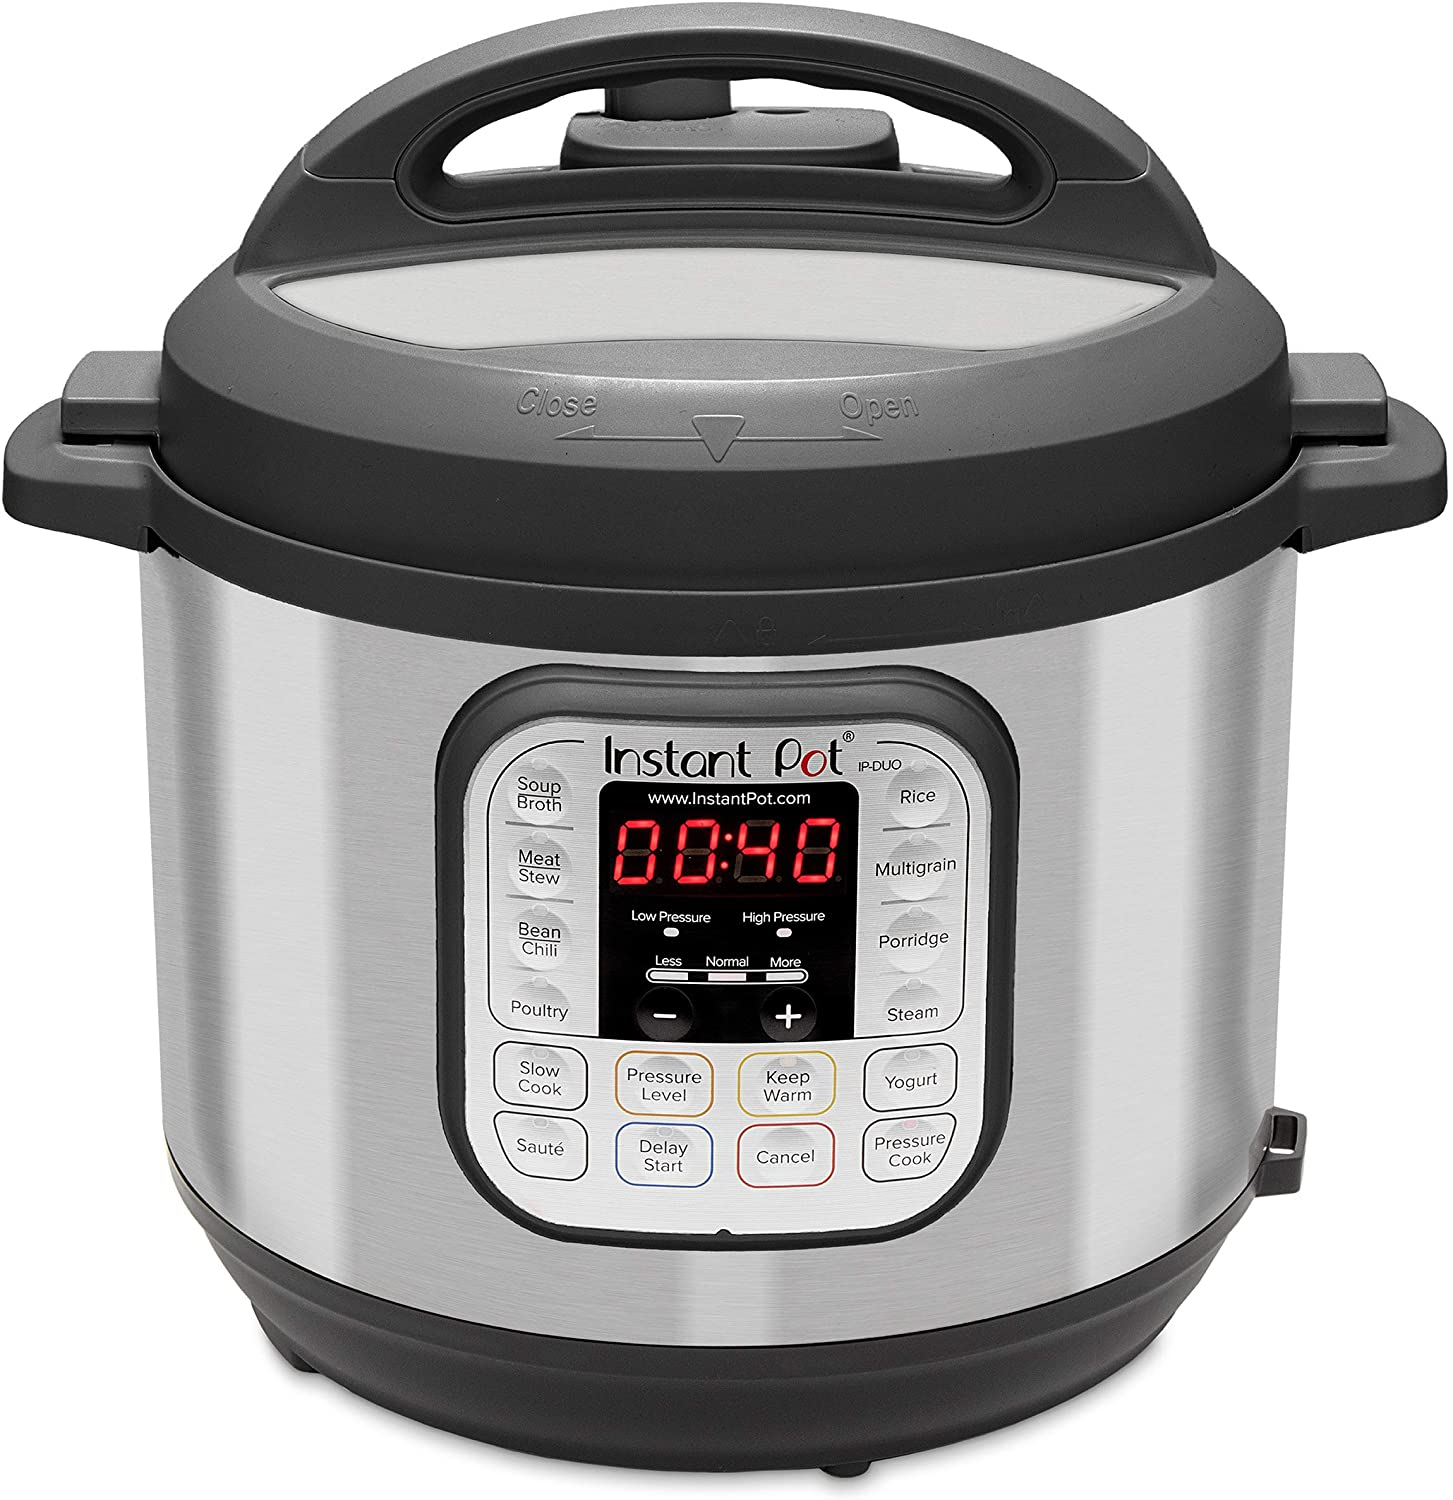 Instant Pot Duo 7-in-1 Electric Pressure Cooker Rice